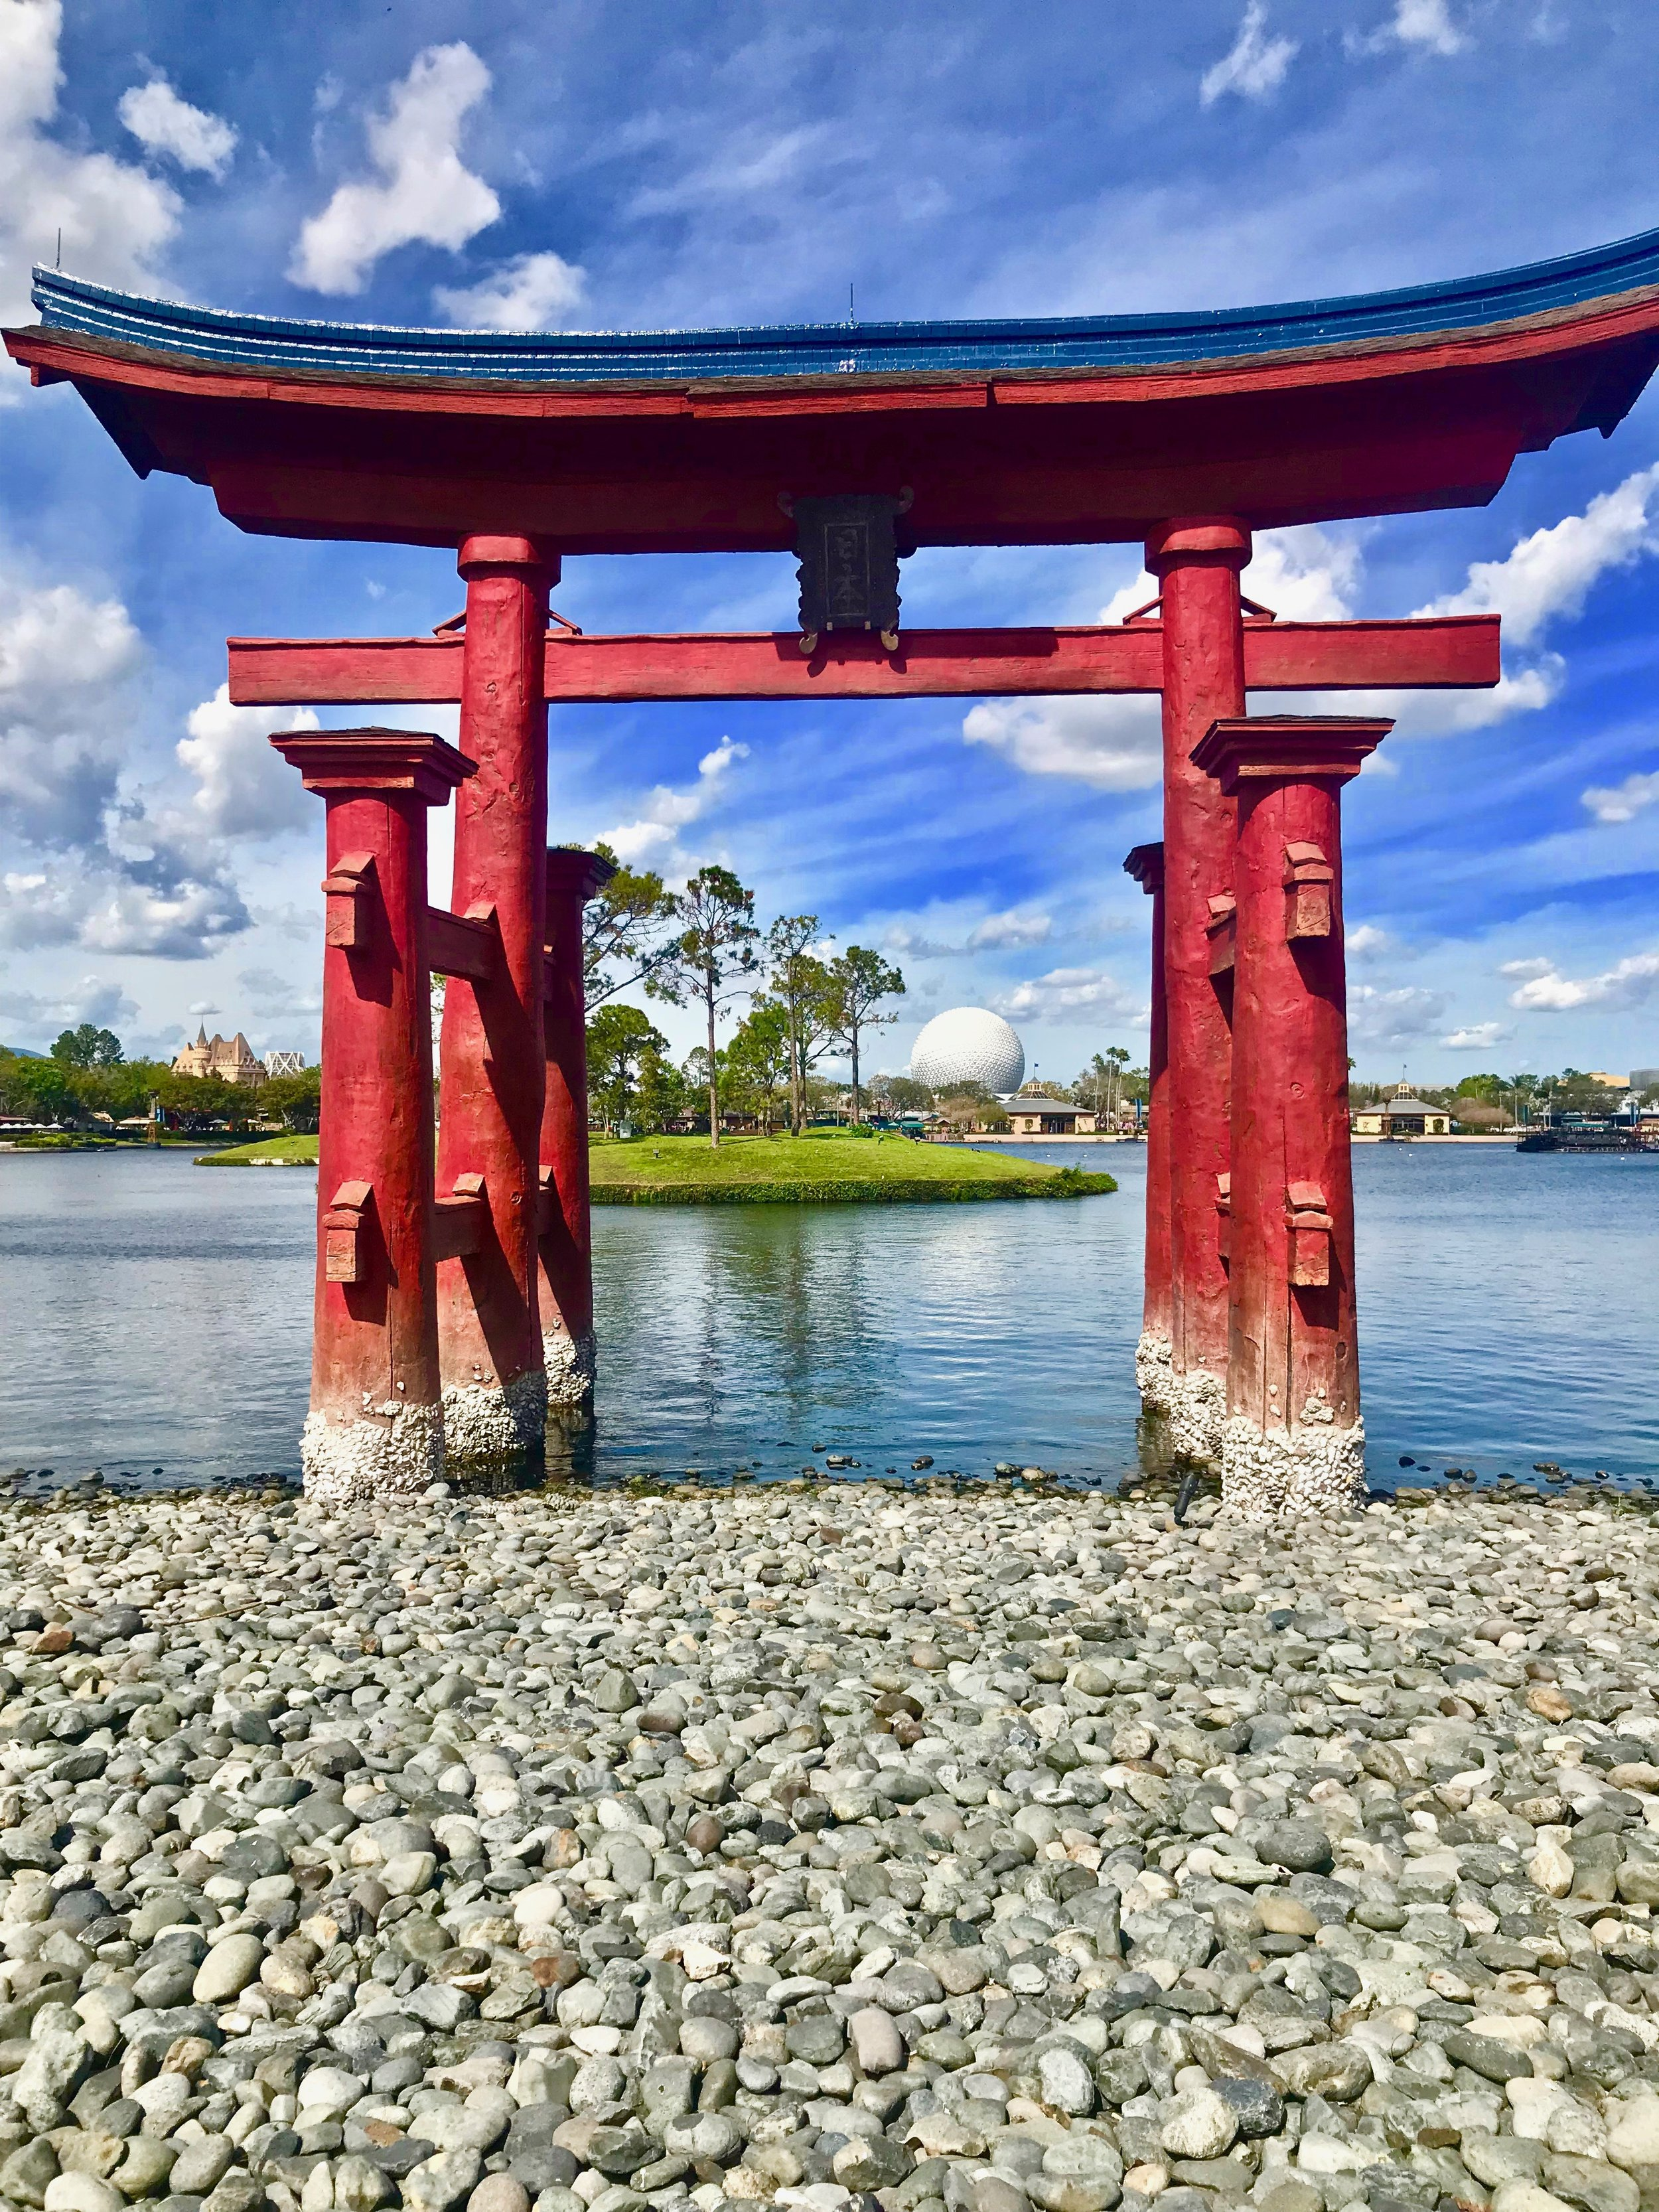 Walt Disney World Epcot Japan Pavilion - How to Make the Most of Disney Theme Parks as an Adult